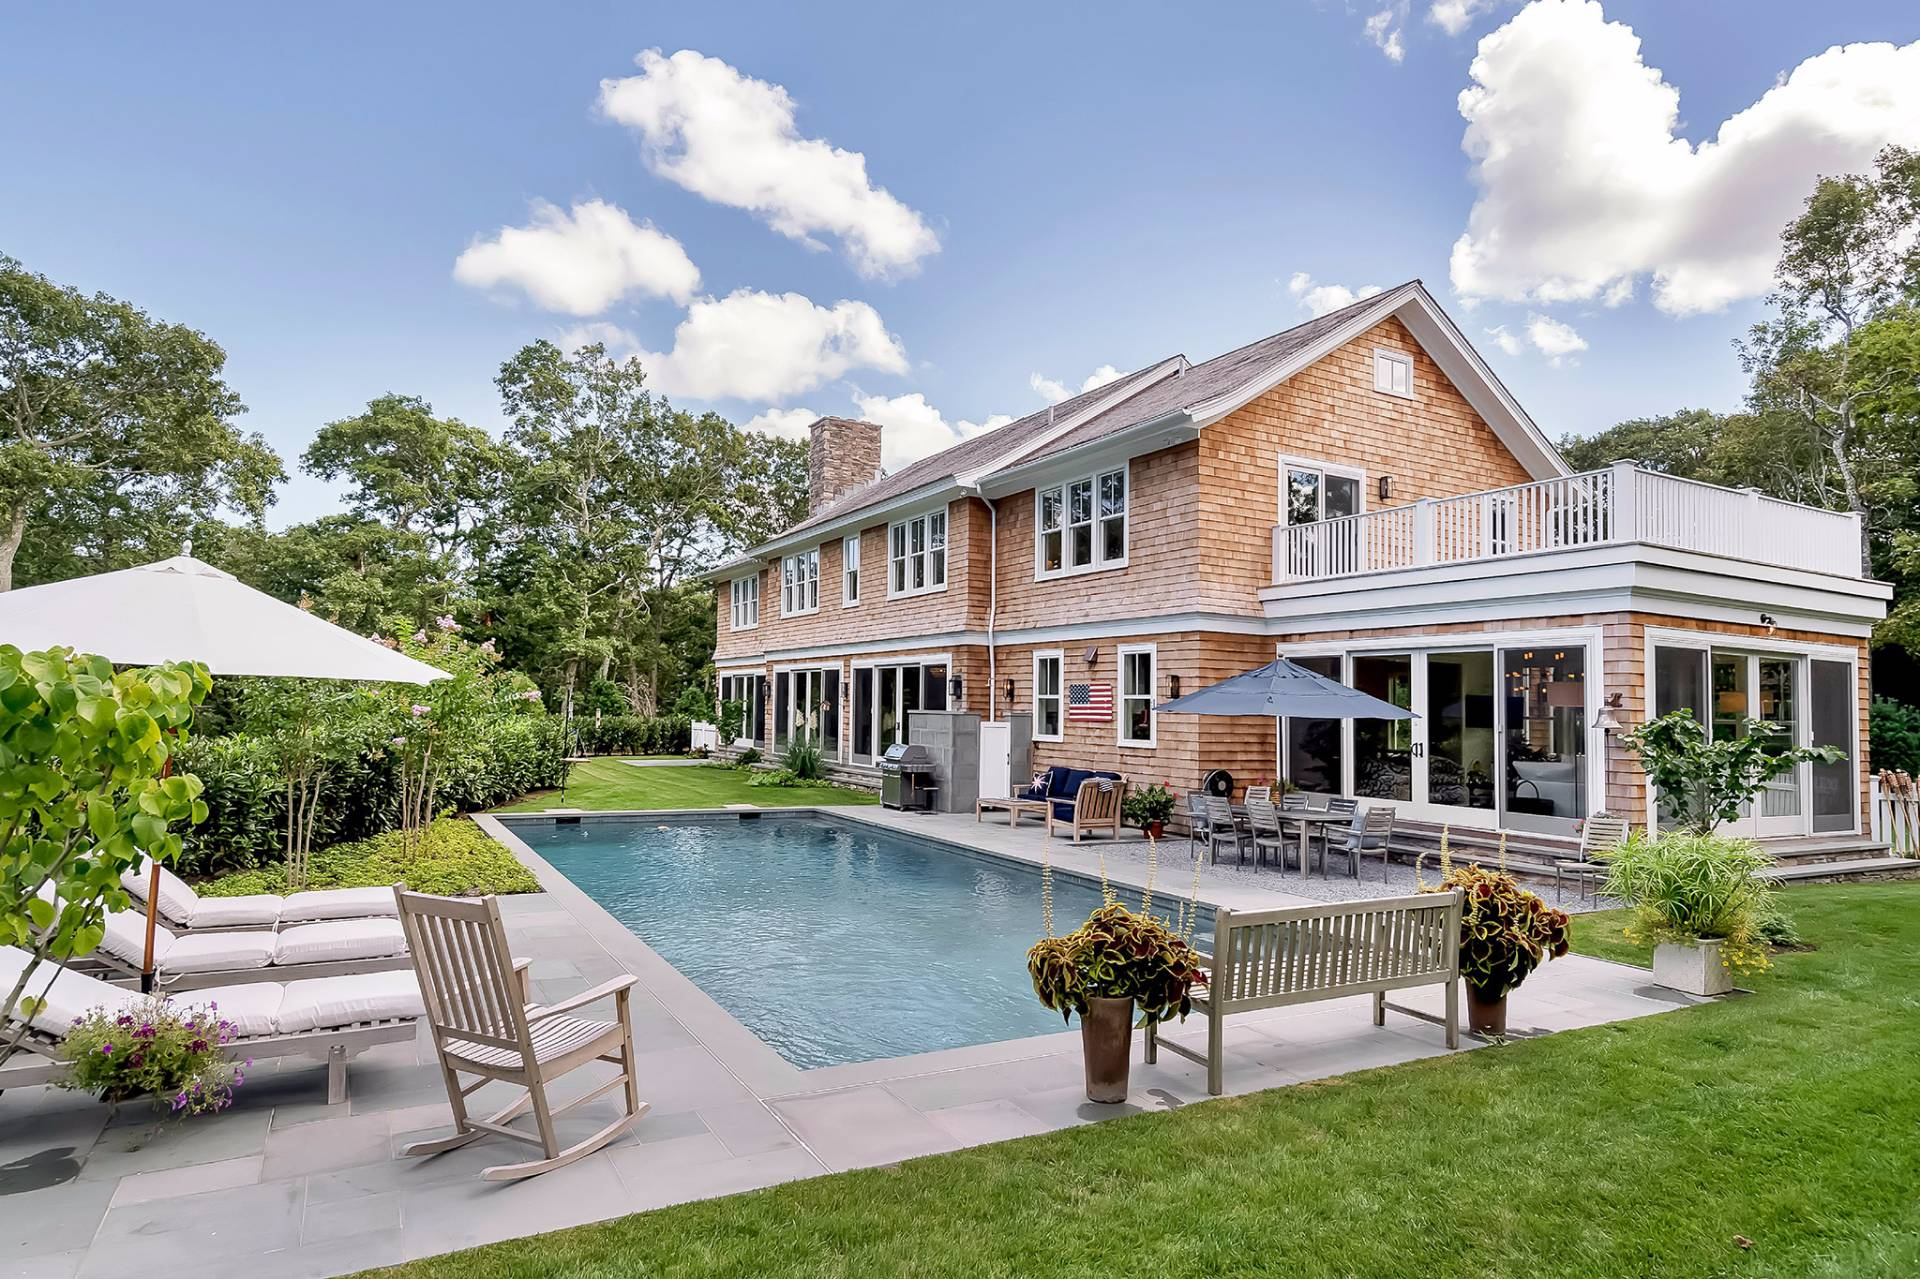 Single Family Home for Sale at Tennis! New And Luxurious Home 171 Springy Banks Road, East Hampton, New York